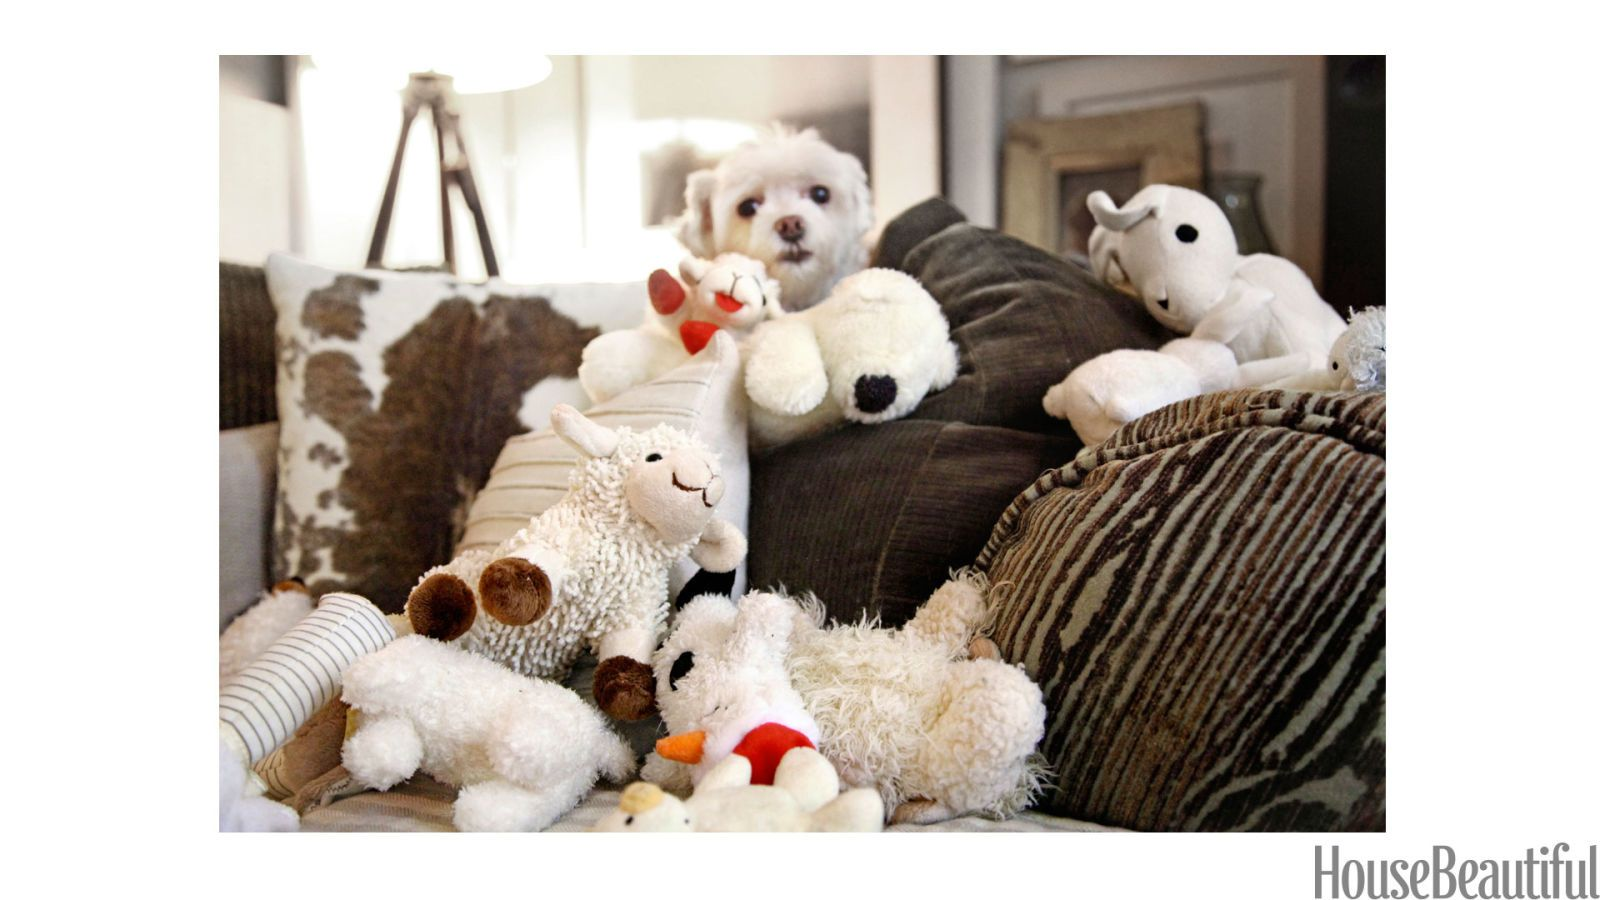 maltese dog and lamb toys